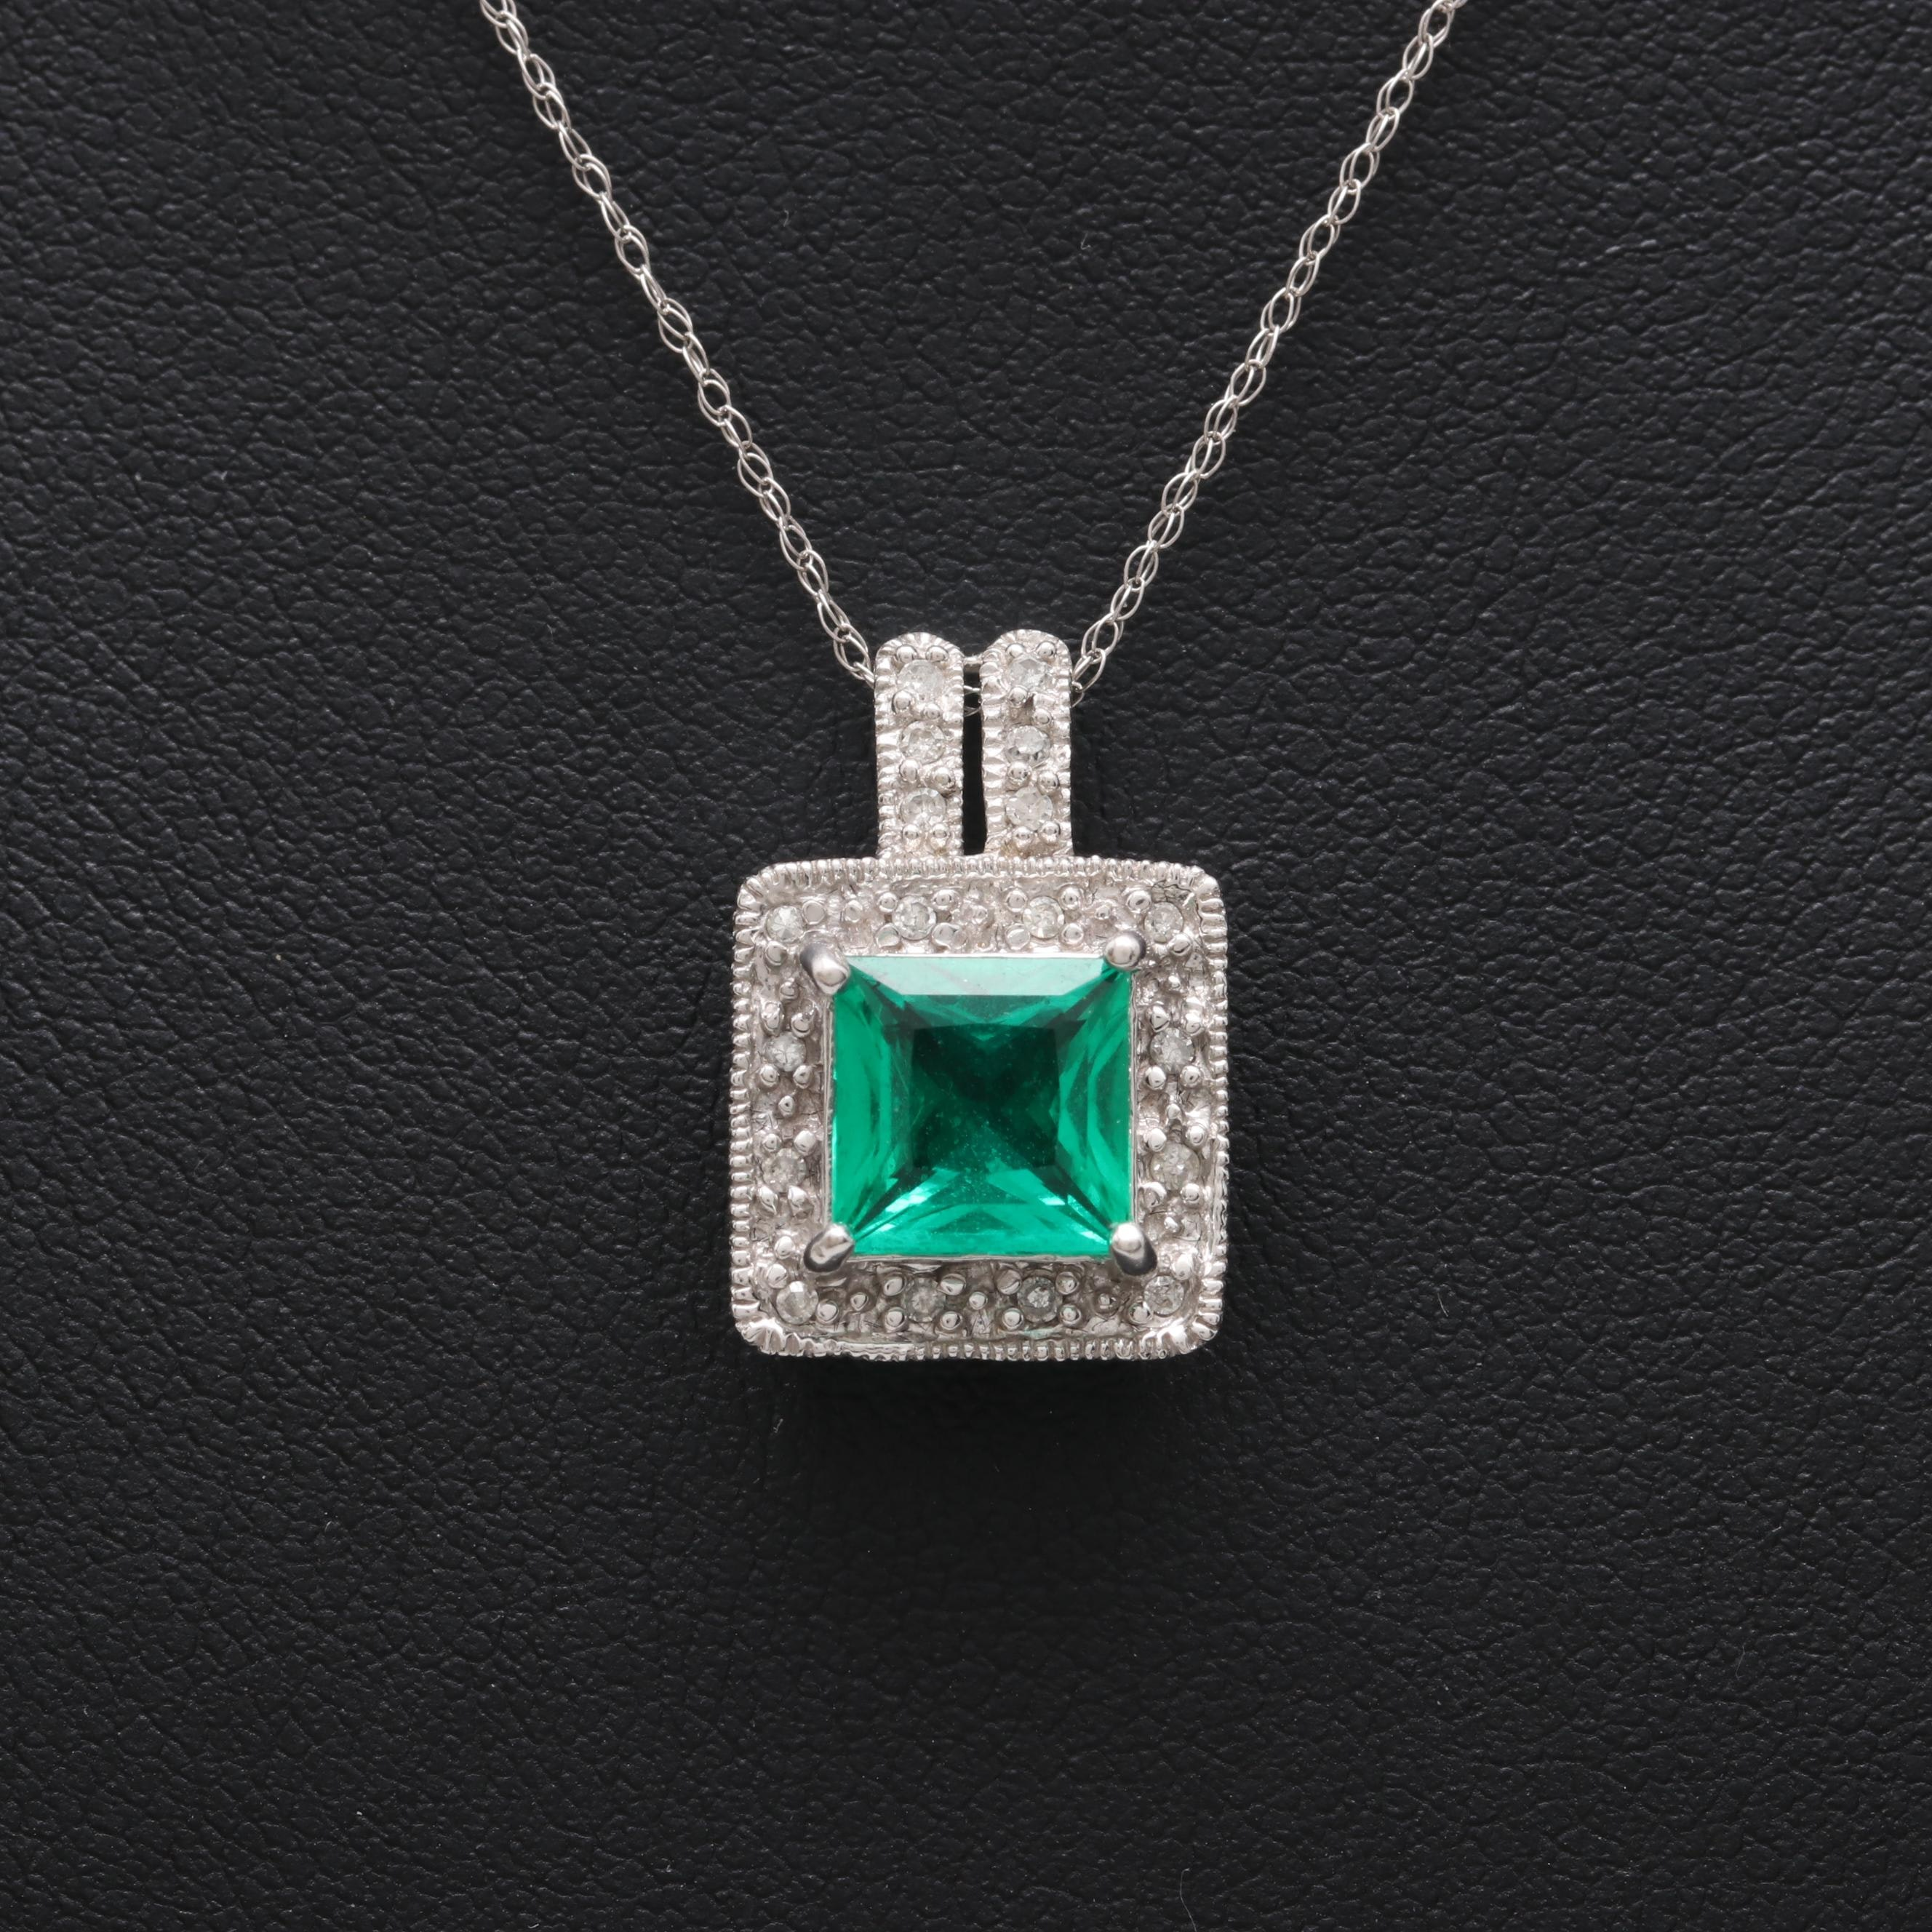 10K and 14K White Gold Synthetic Emerald and Diamond Necklace